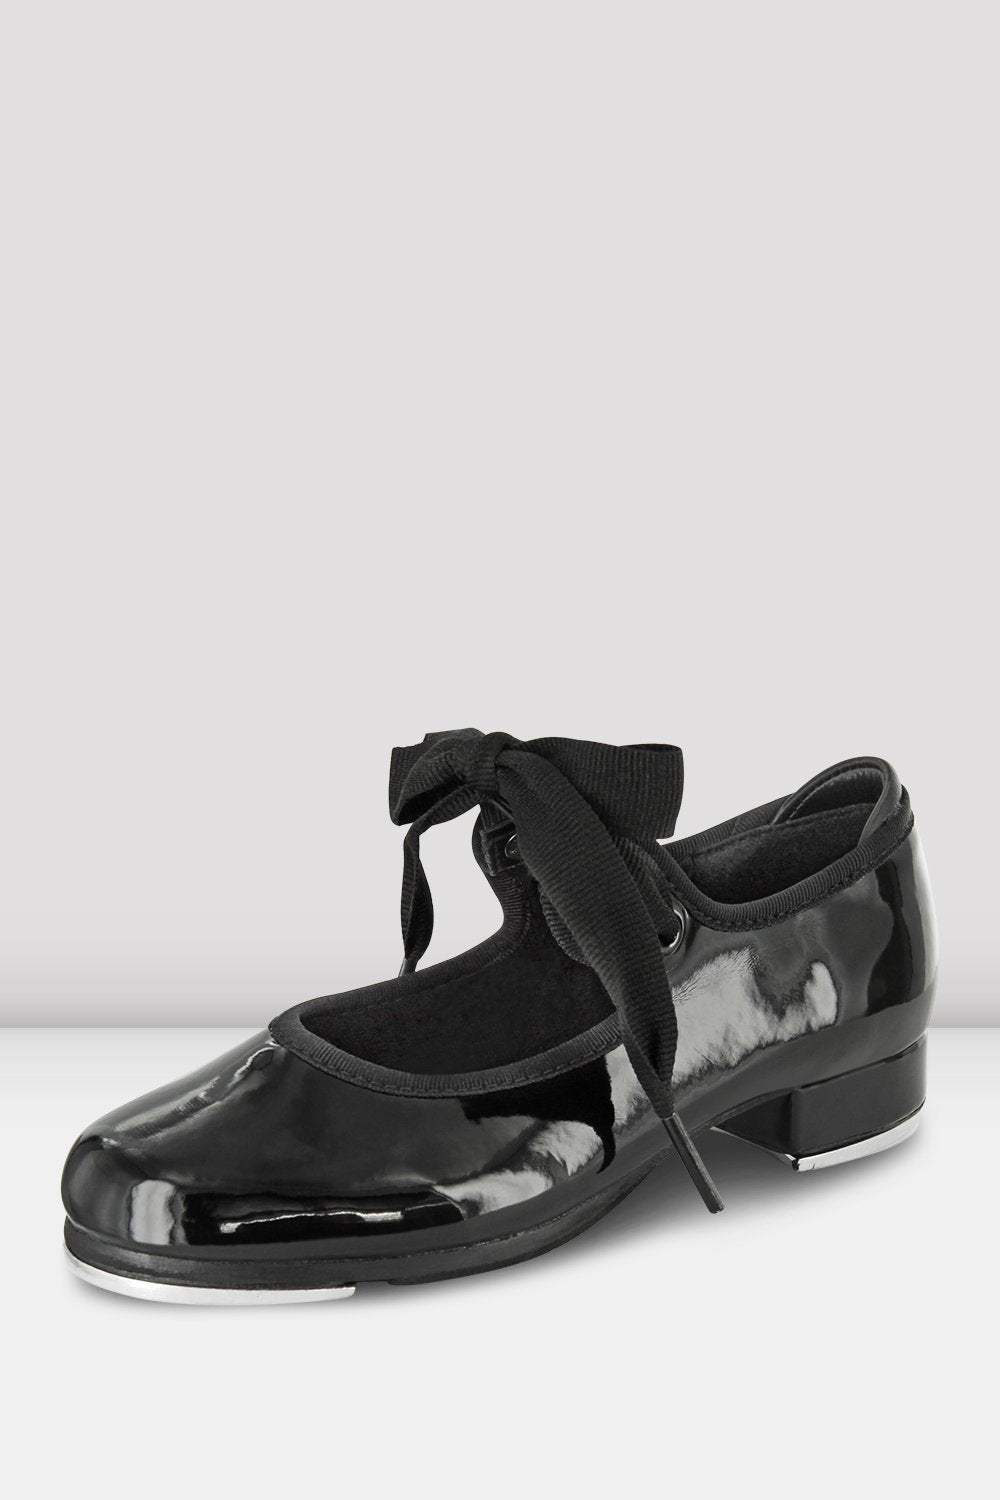 BLOCH - SO305G - Tyette Tap shoe